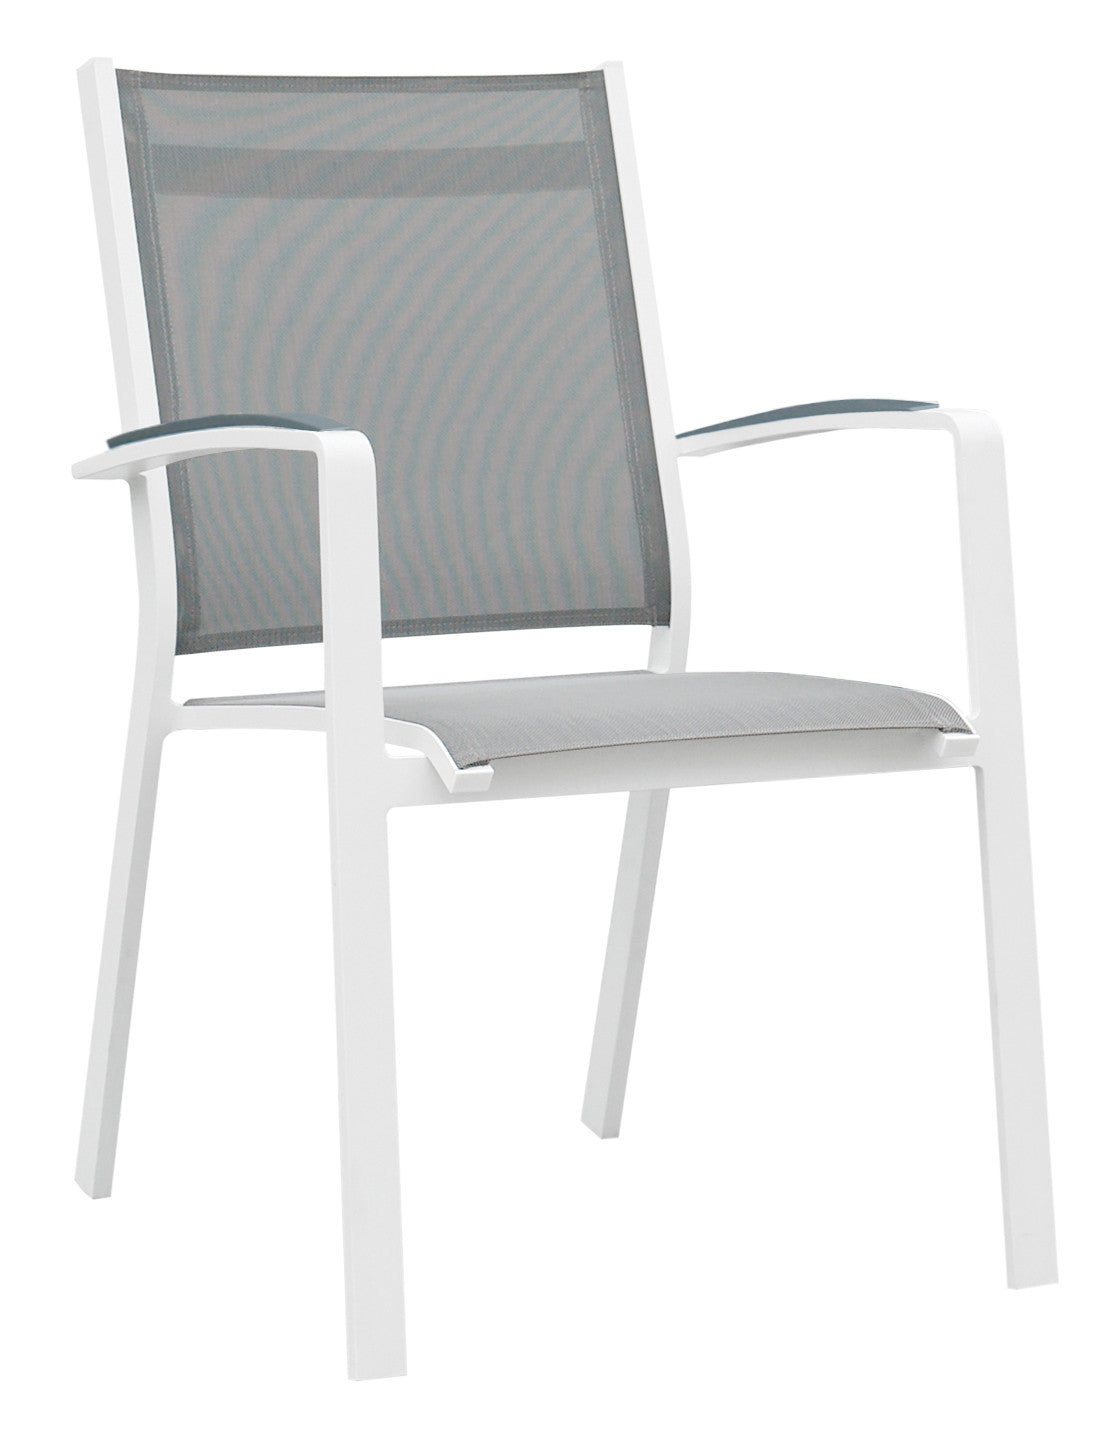 13 Piece Extendable Modern Patio Dining Set - Gray / White ...